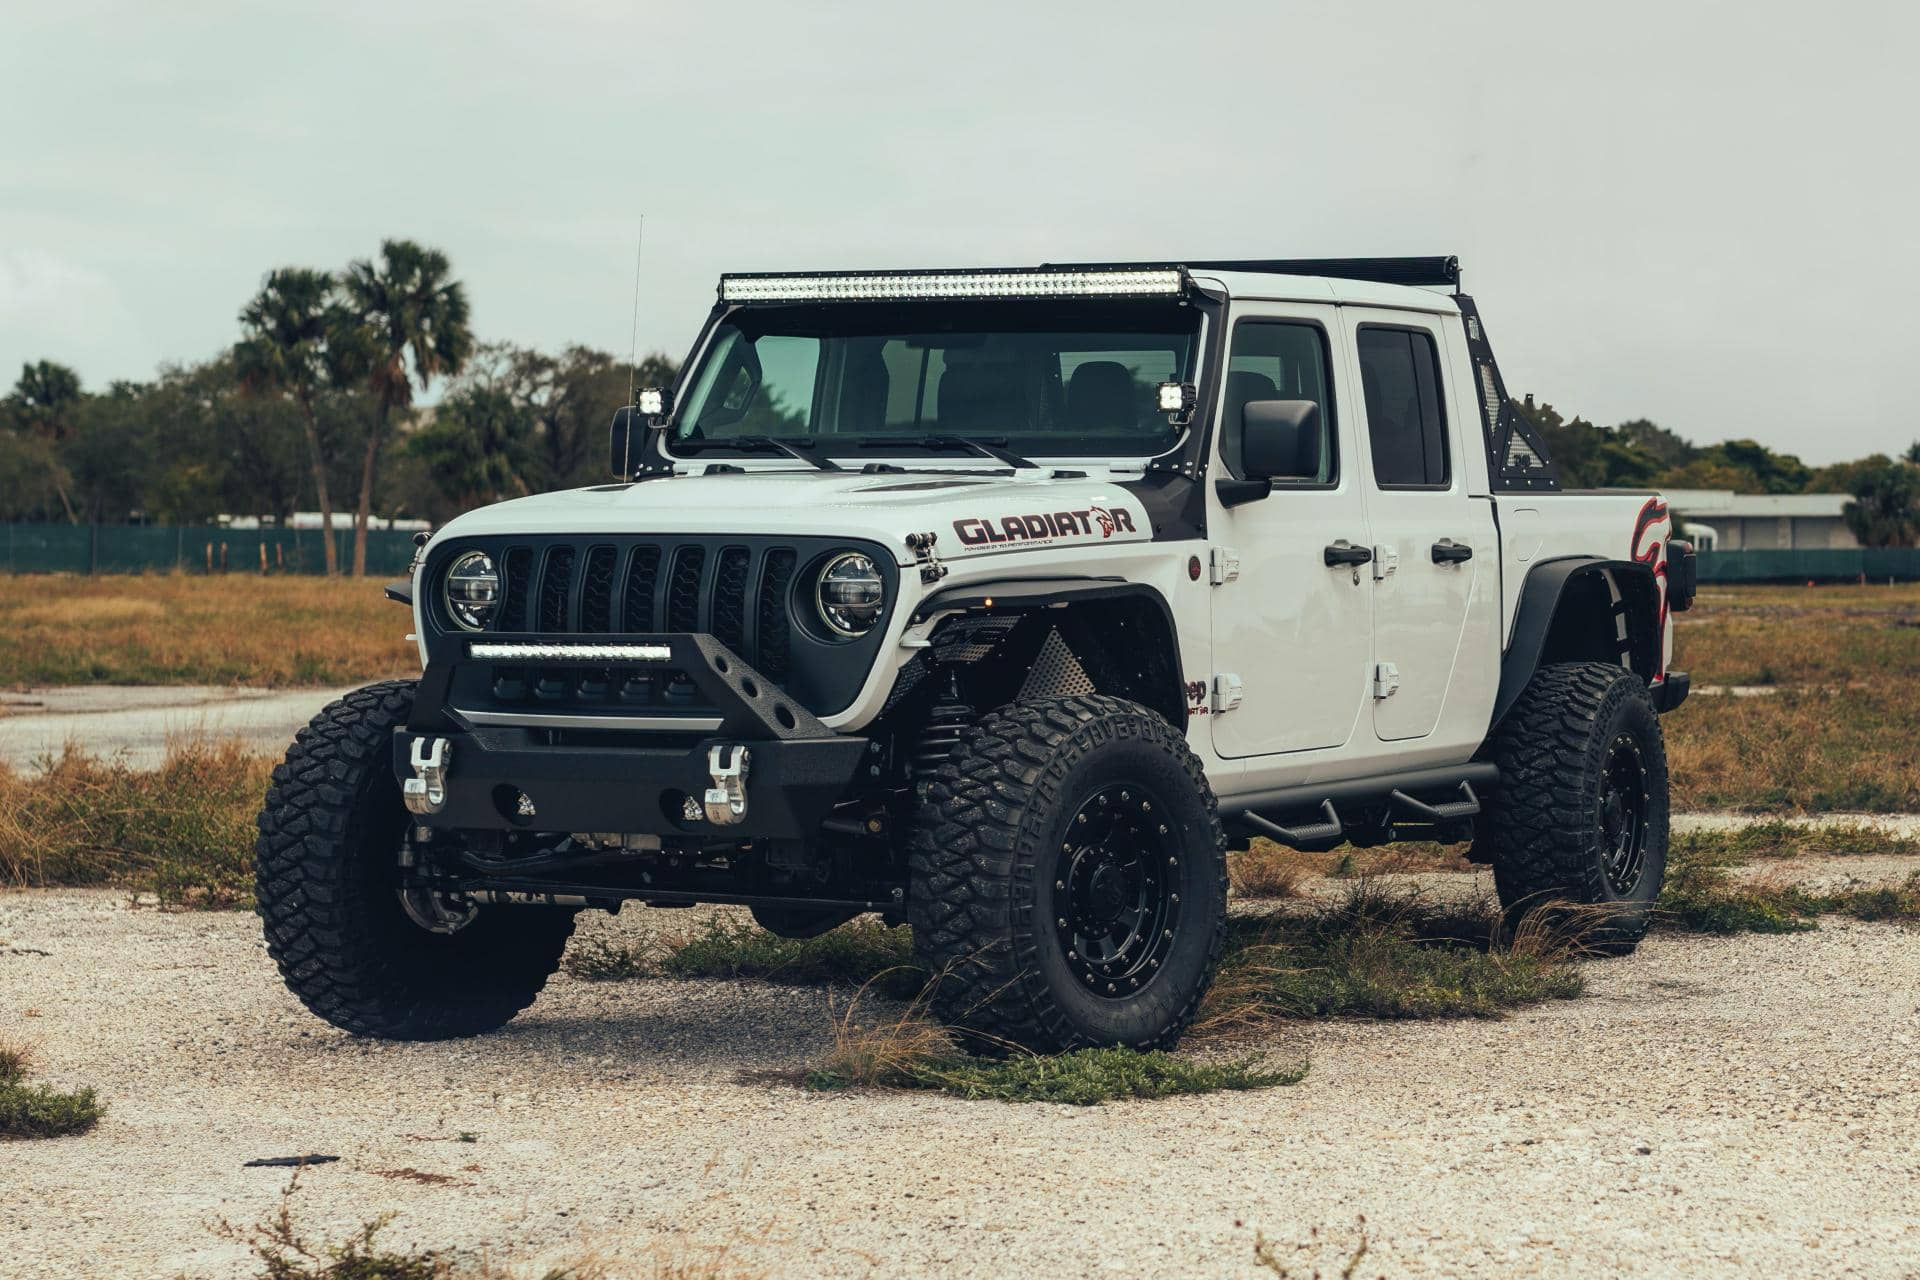 2020-Jeep-Gladiator-Hellcat-built-by-TR3-Performance-24